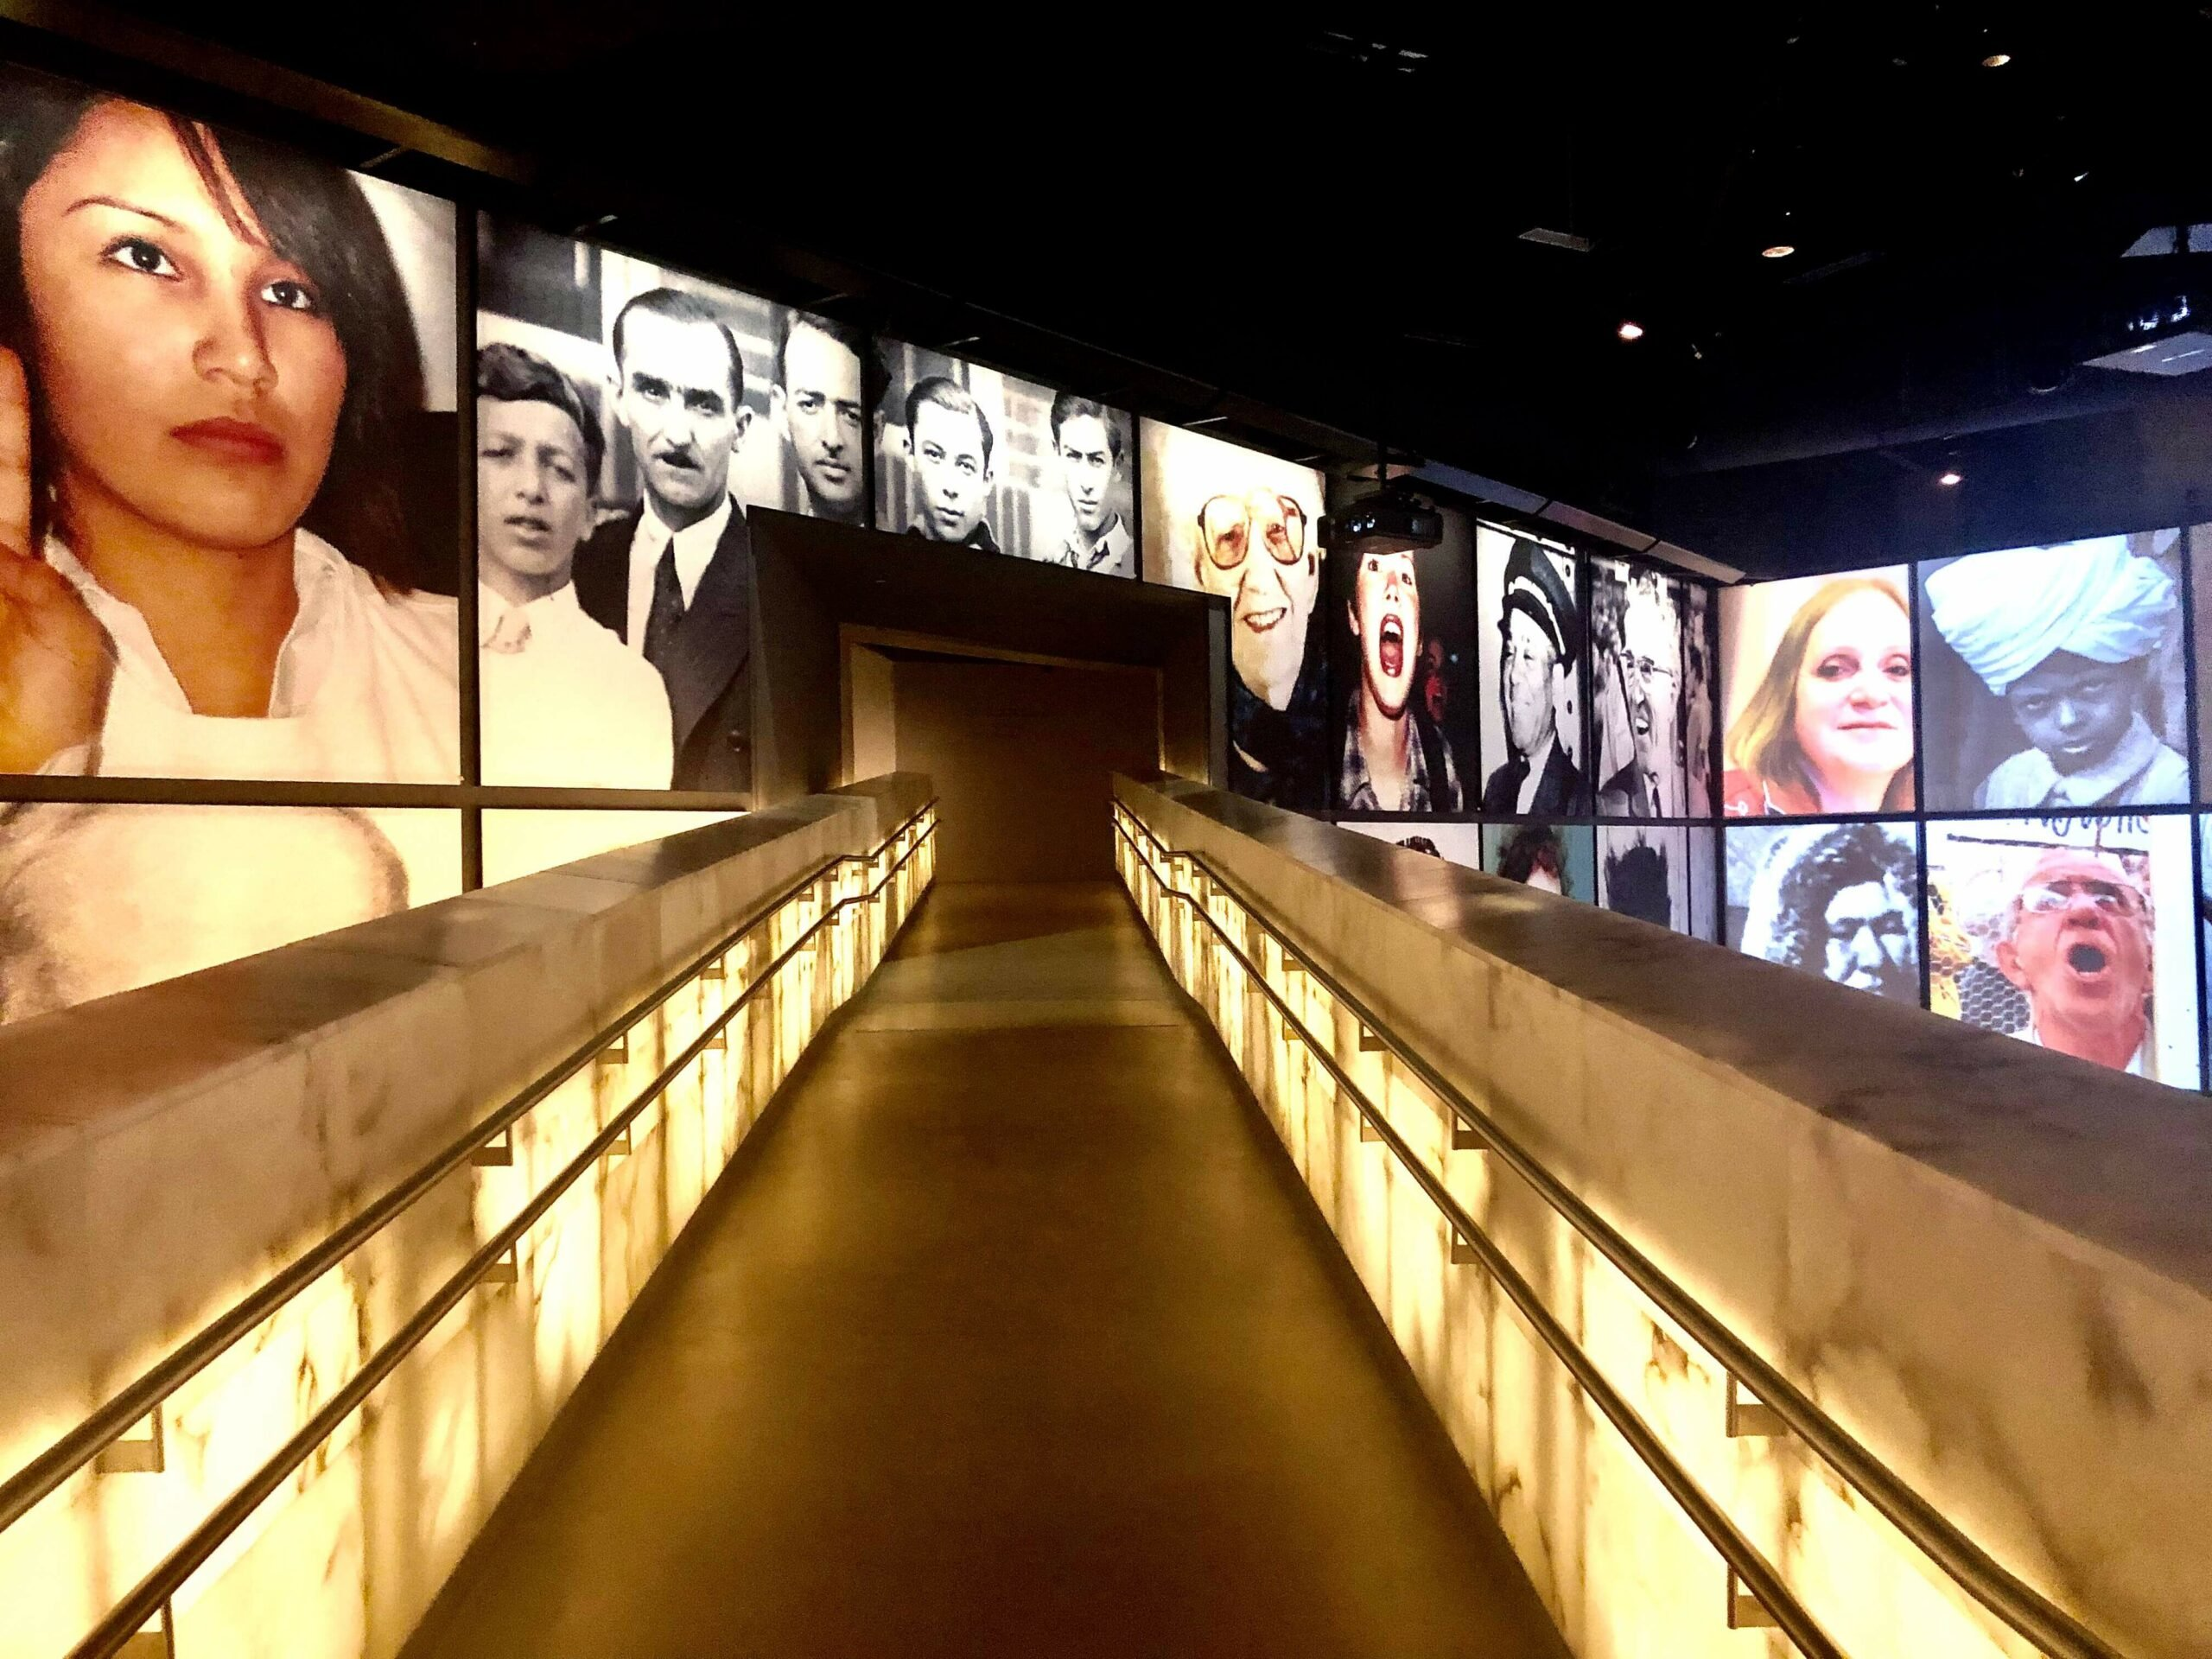 The alabaster walkway Inside the Museum of Human Rights in Winnipeg, Manitoba - a must-see.